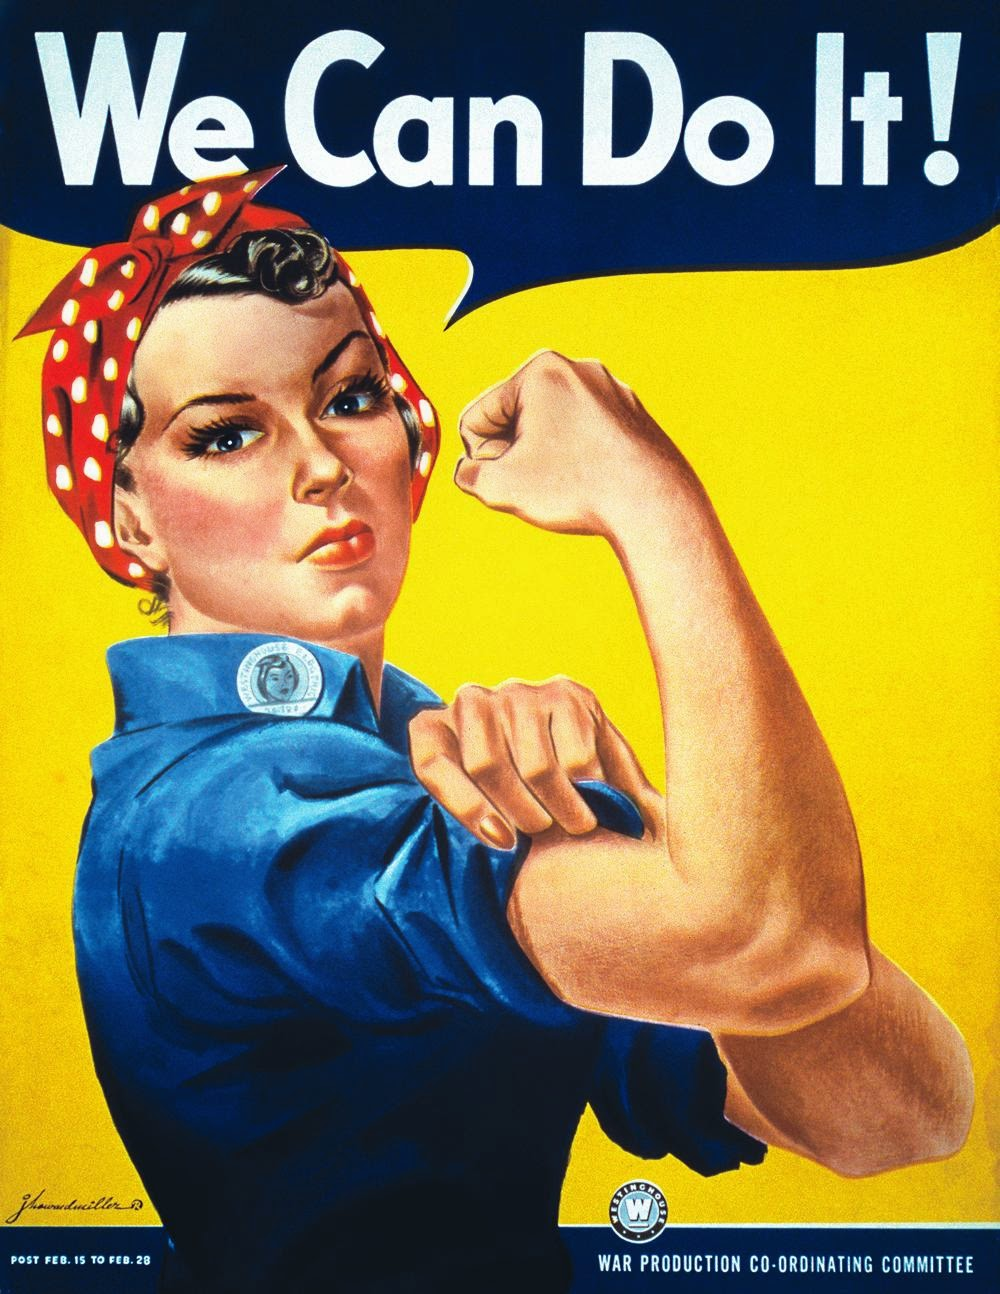 We can do it! Feminismo Capuccino e bobagens